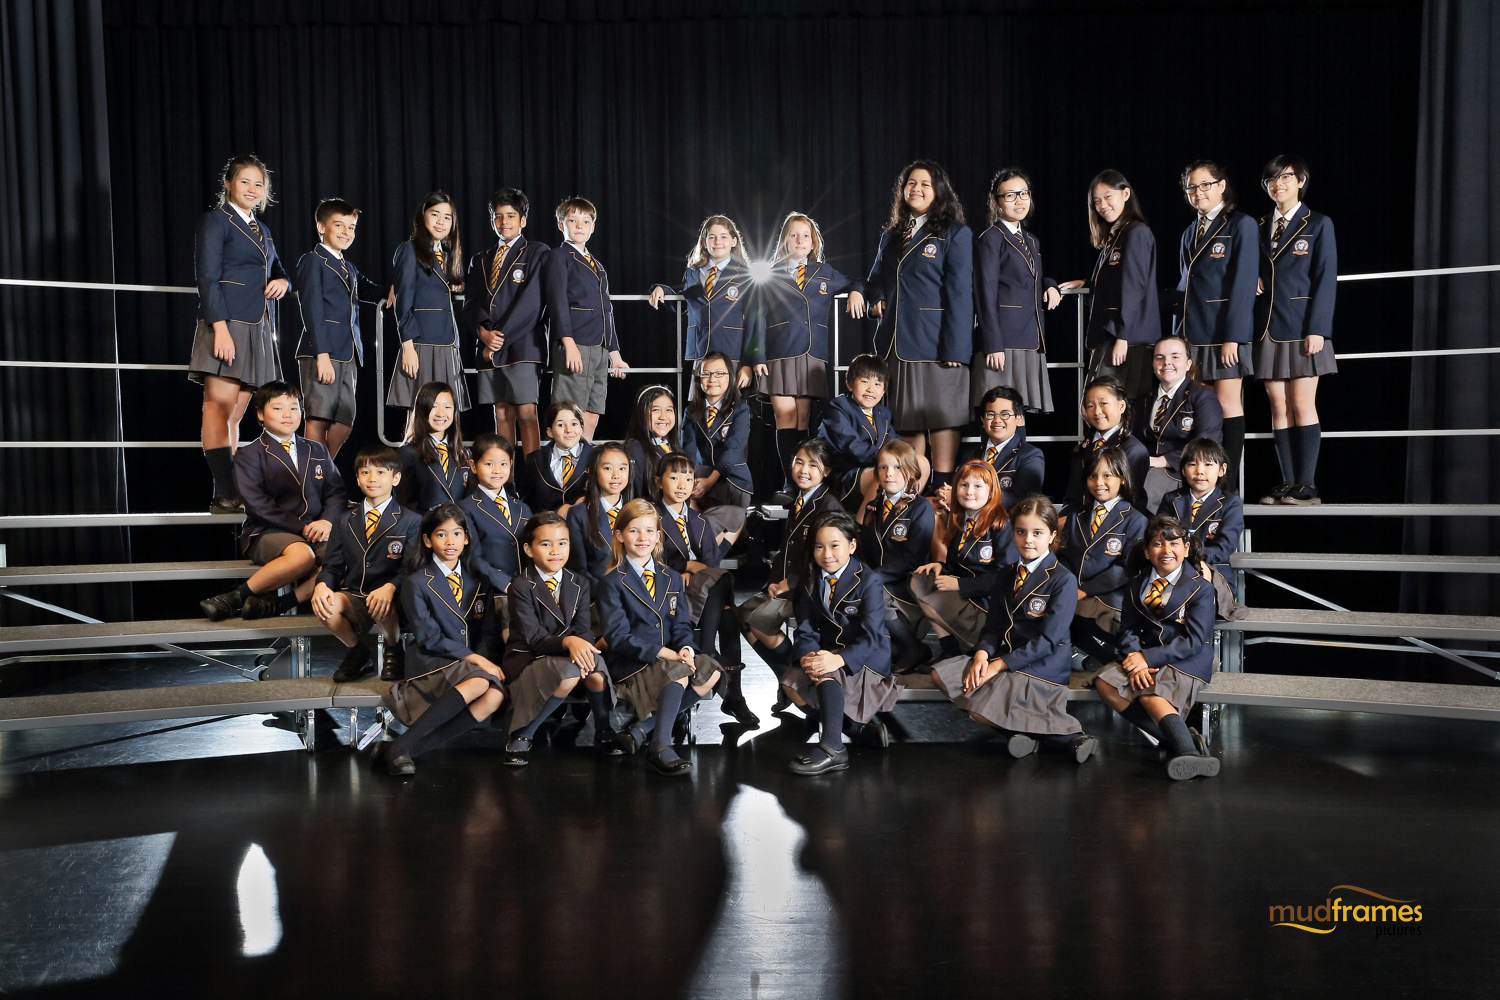 The British International School Senior Chamber Choir